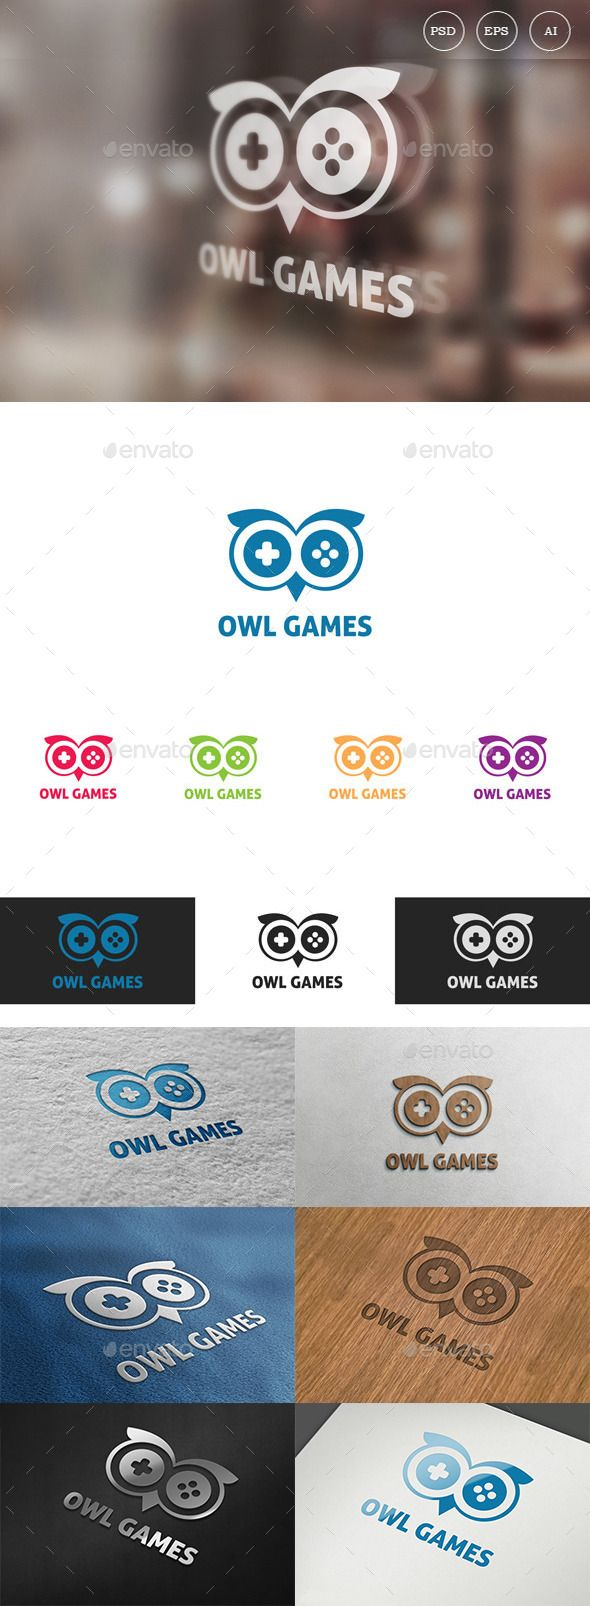 Owl Games  Logo Design Template Vector #logotype Download it here: http://graphicriver.net/item/owl-games-logo/9919726?s_rank=1761?ref=nexion